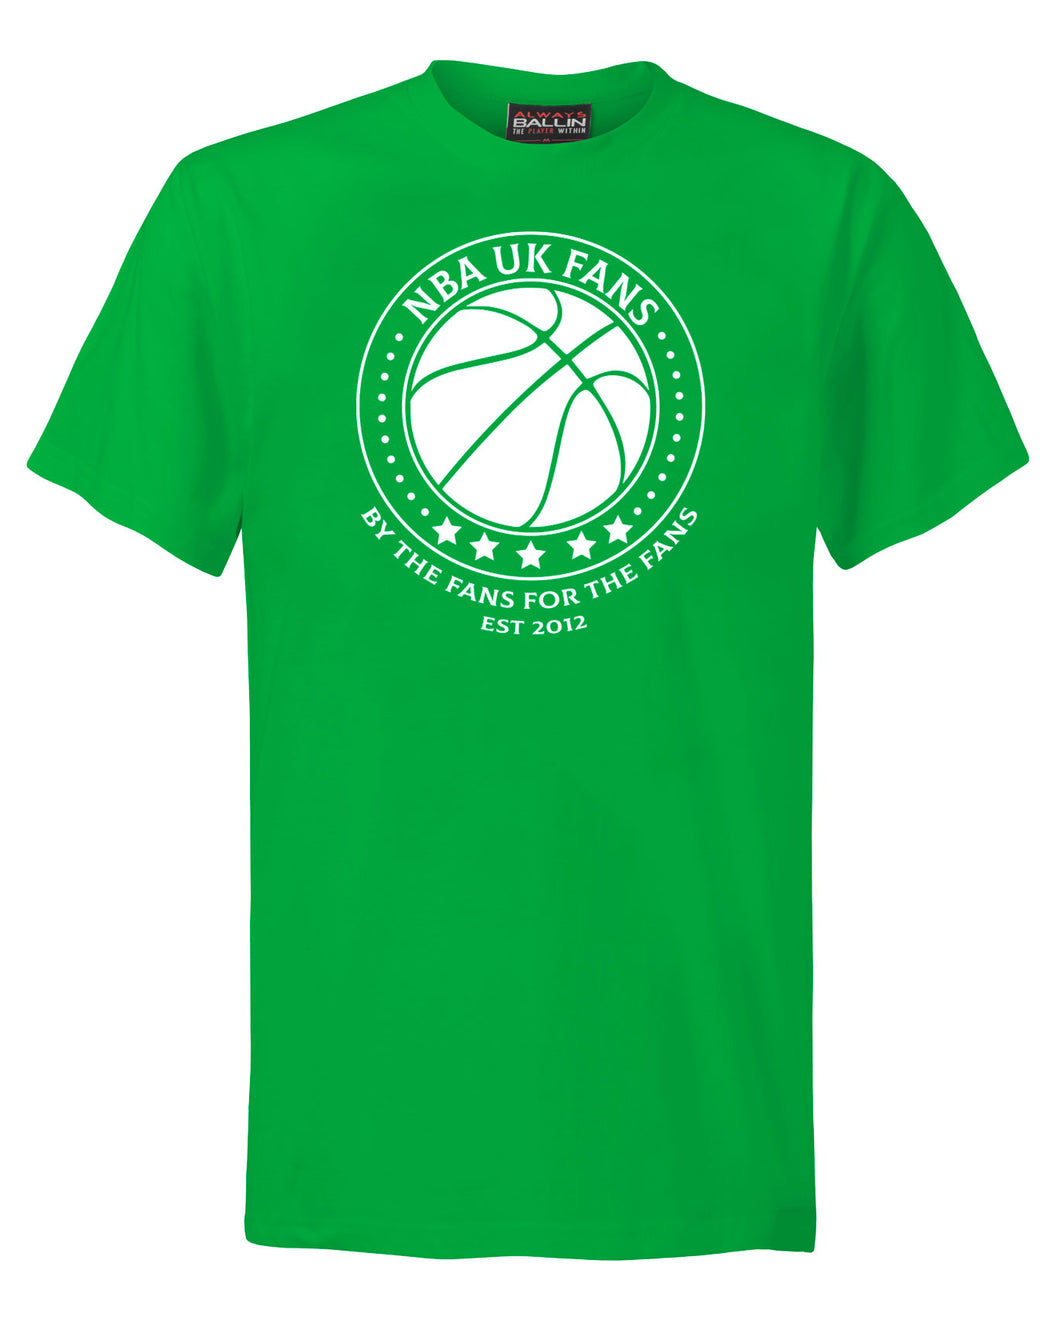 NBA UK Fans Logo Kelly Green T-Shirt